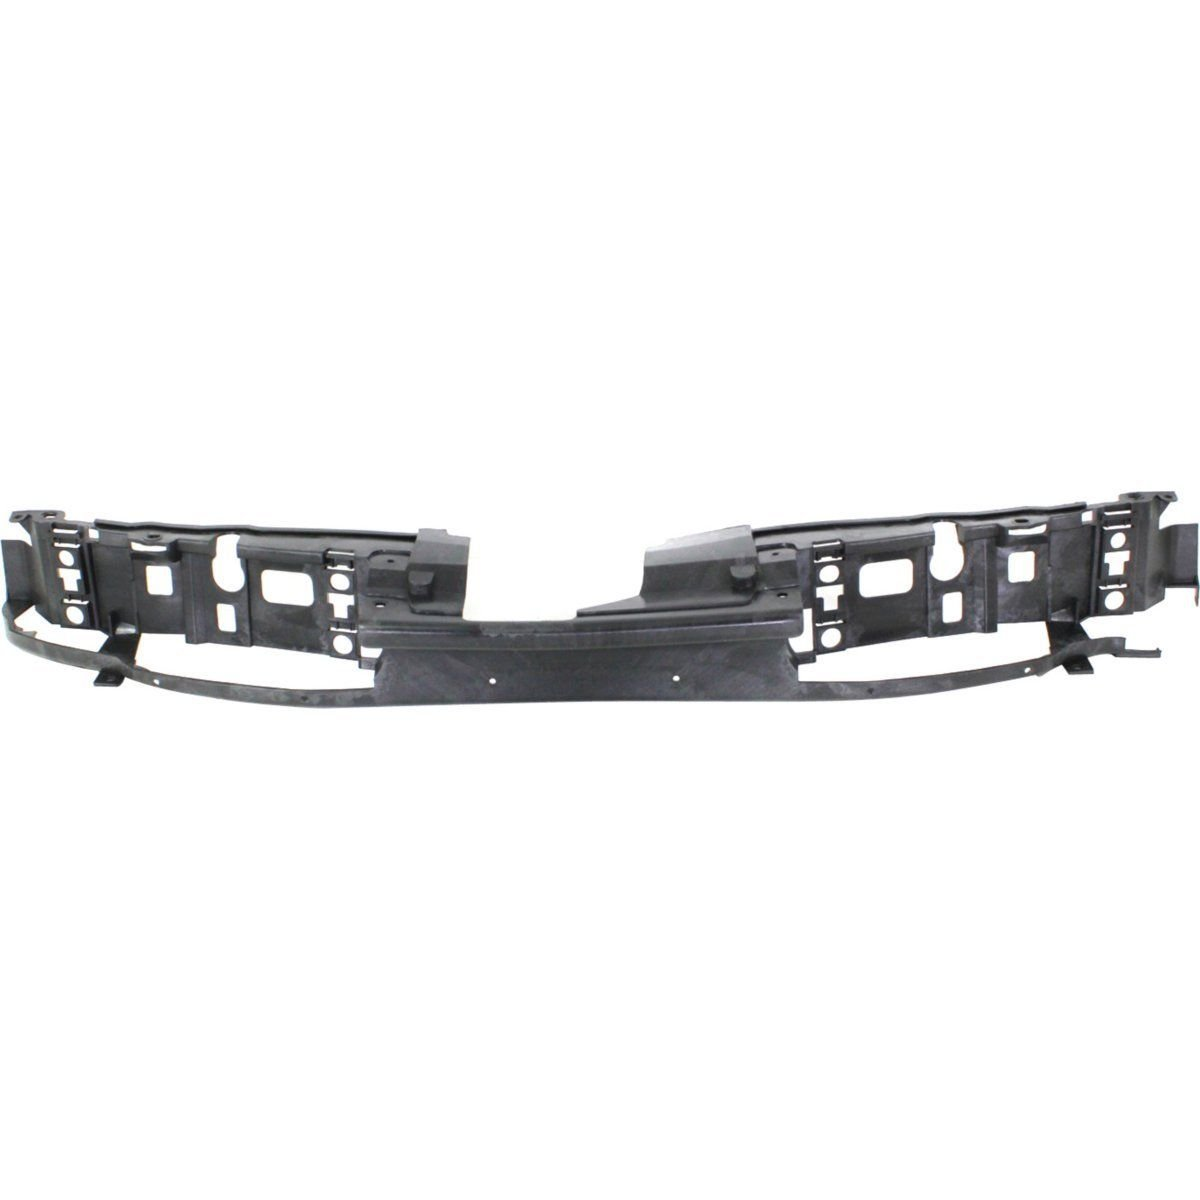 New Front Header Panel For 1999-2004 Oldsmobile Alero Thermoplastic, Black GM1221114 22619078 Fitrite Autoparts